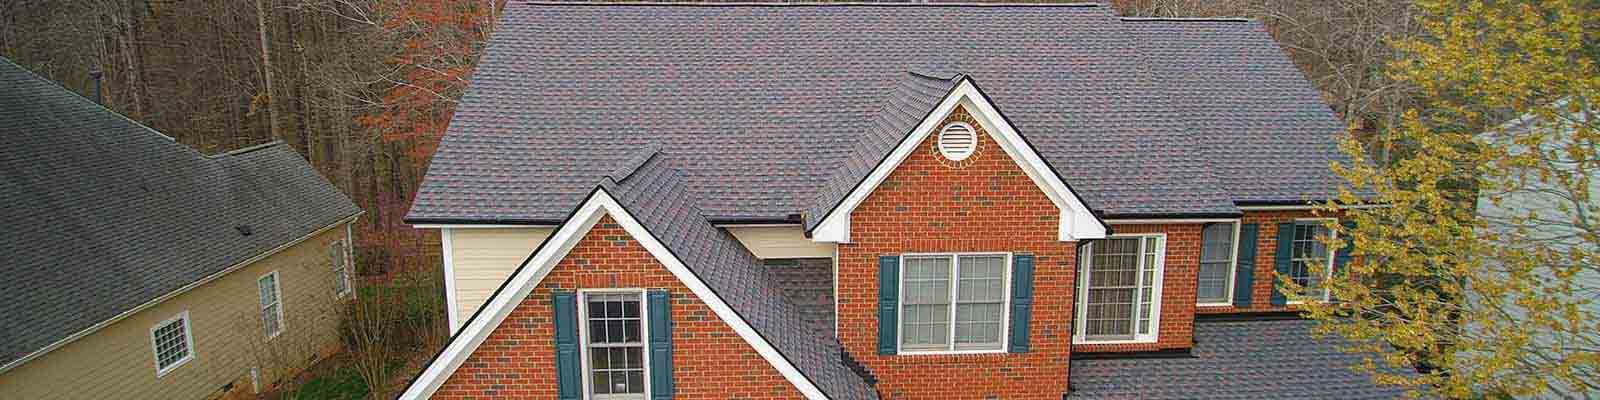 Roofing Systems In Raleigh NC